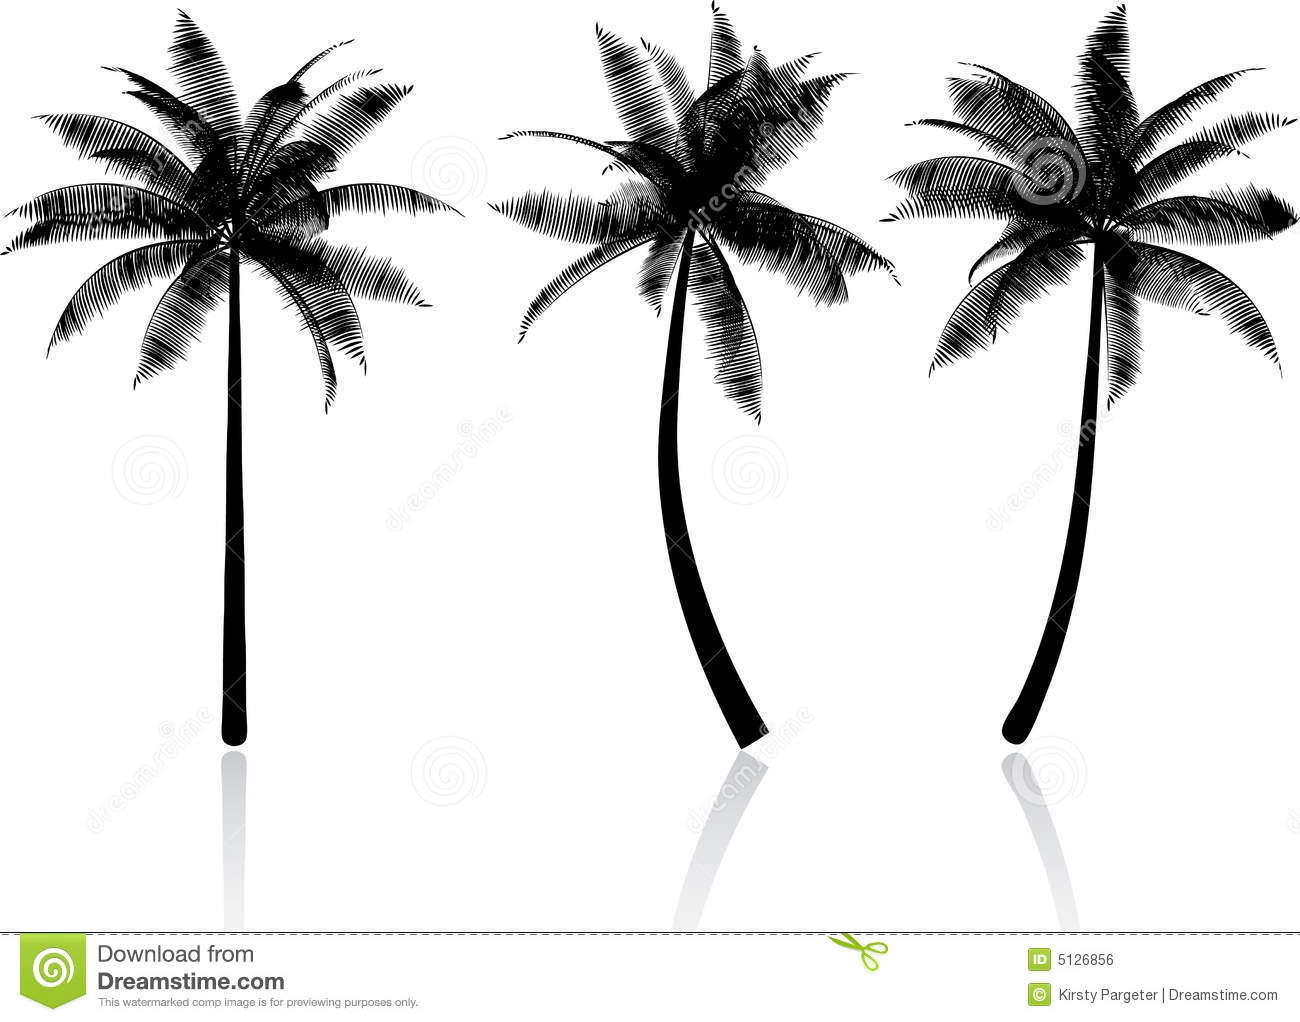 Palm Trees Royalty Free Stock Image - Image: 5126856 - photo#49